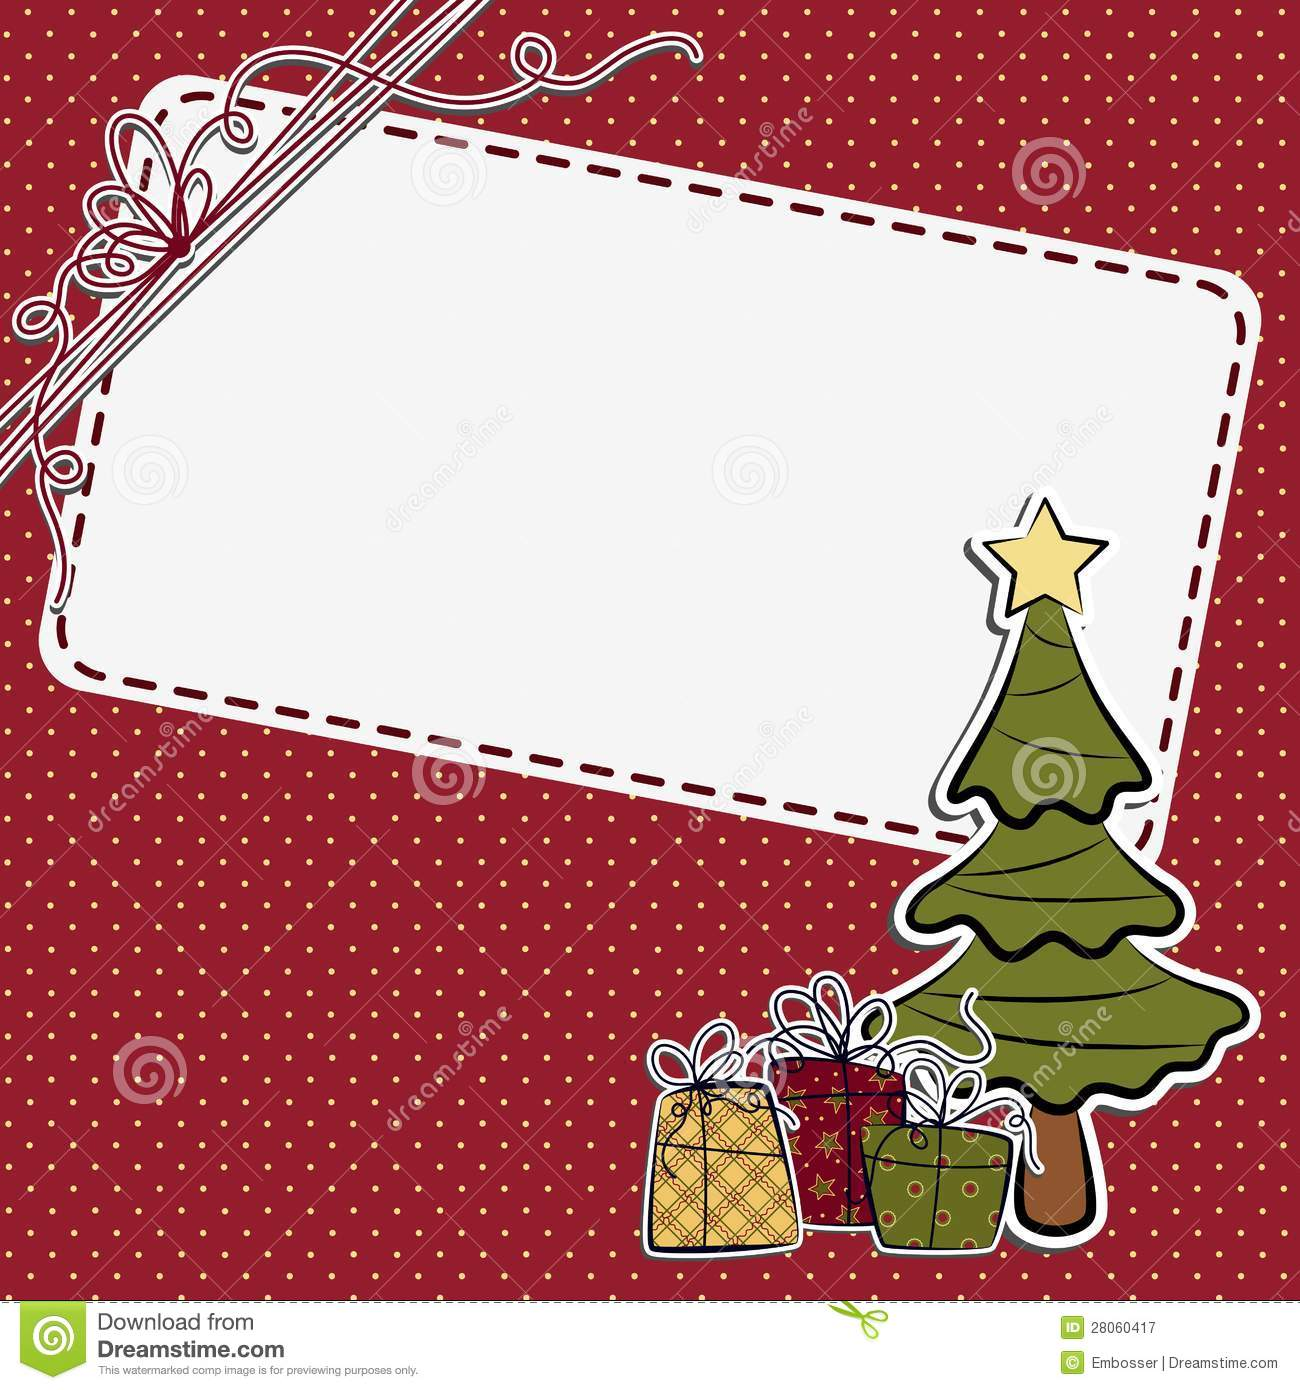 Cute Christmas Postcard Template Royalty Free Stock Photography ...